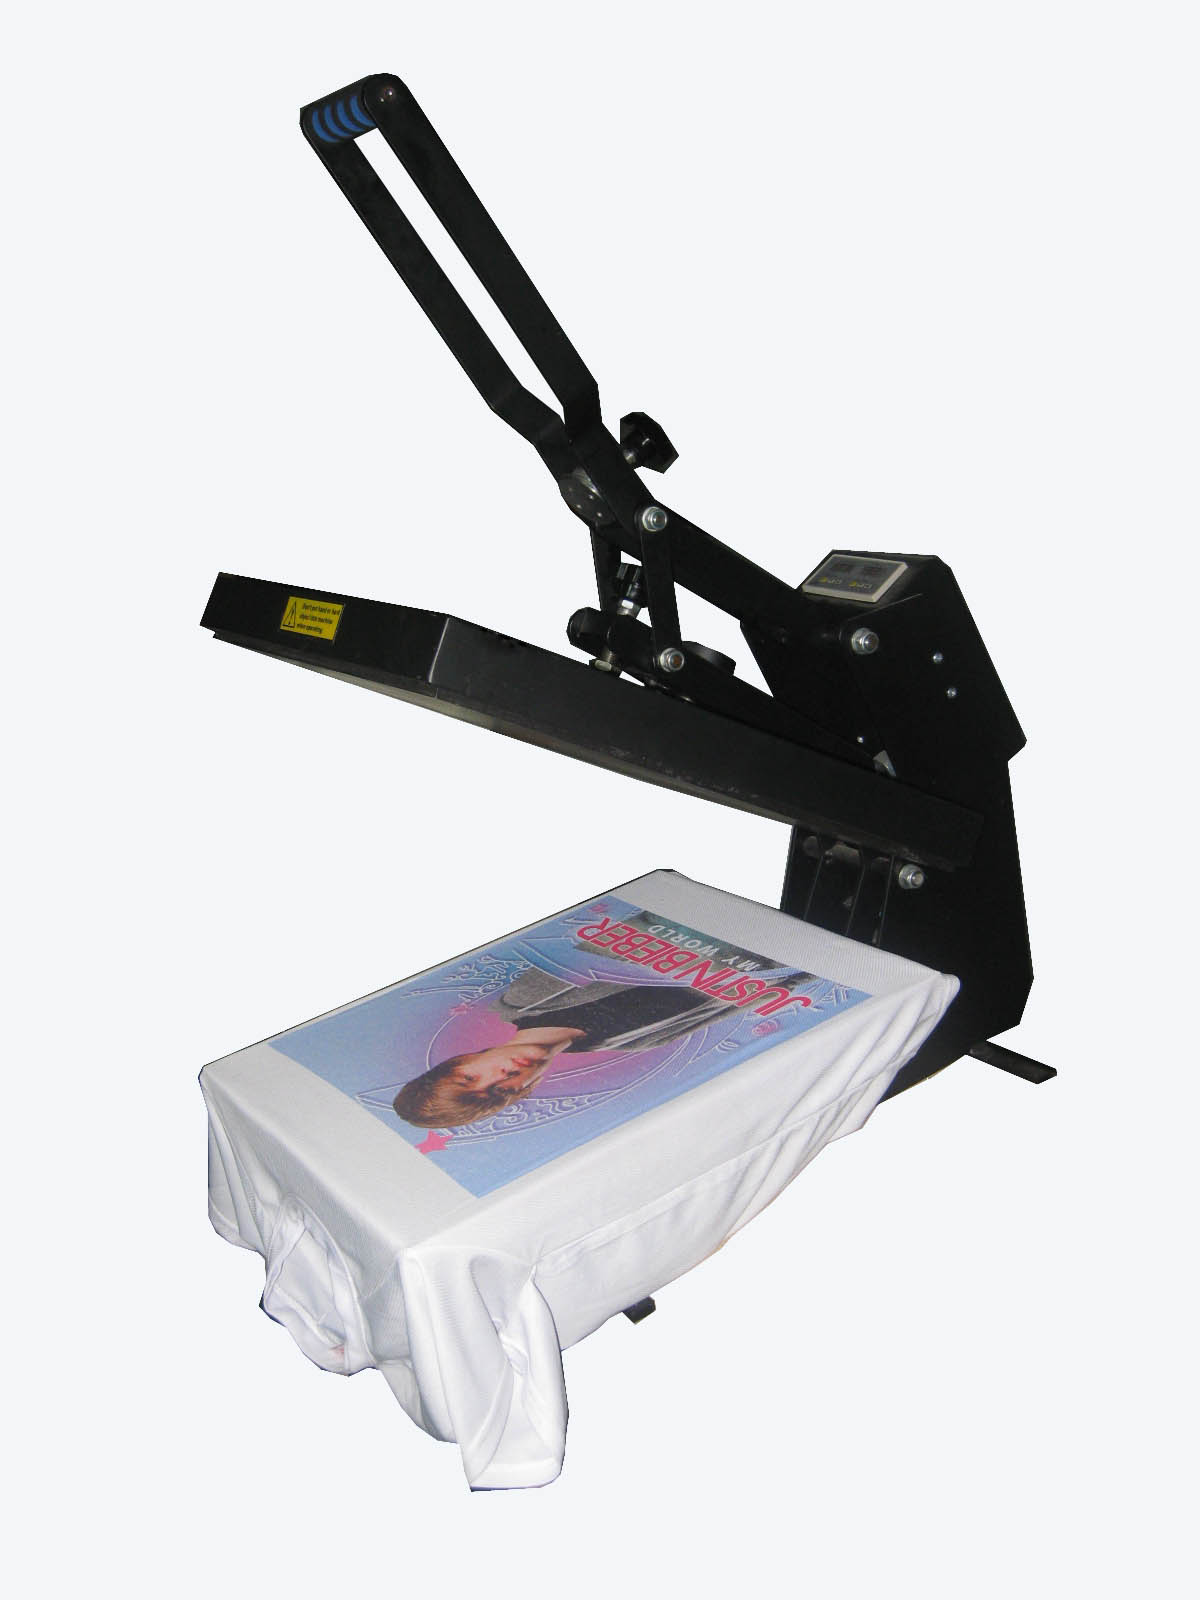 T Shirt Printing Businesshigh Potential Business With Low